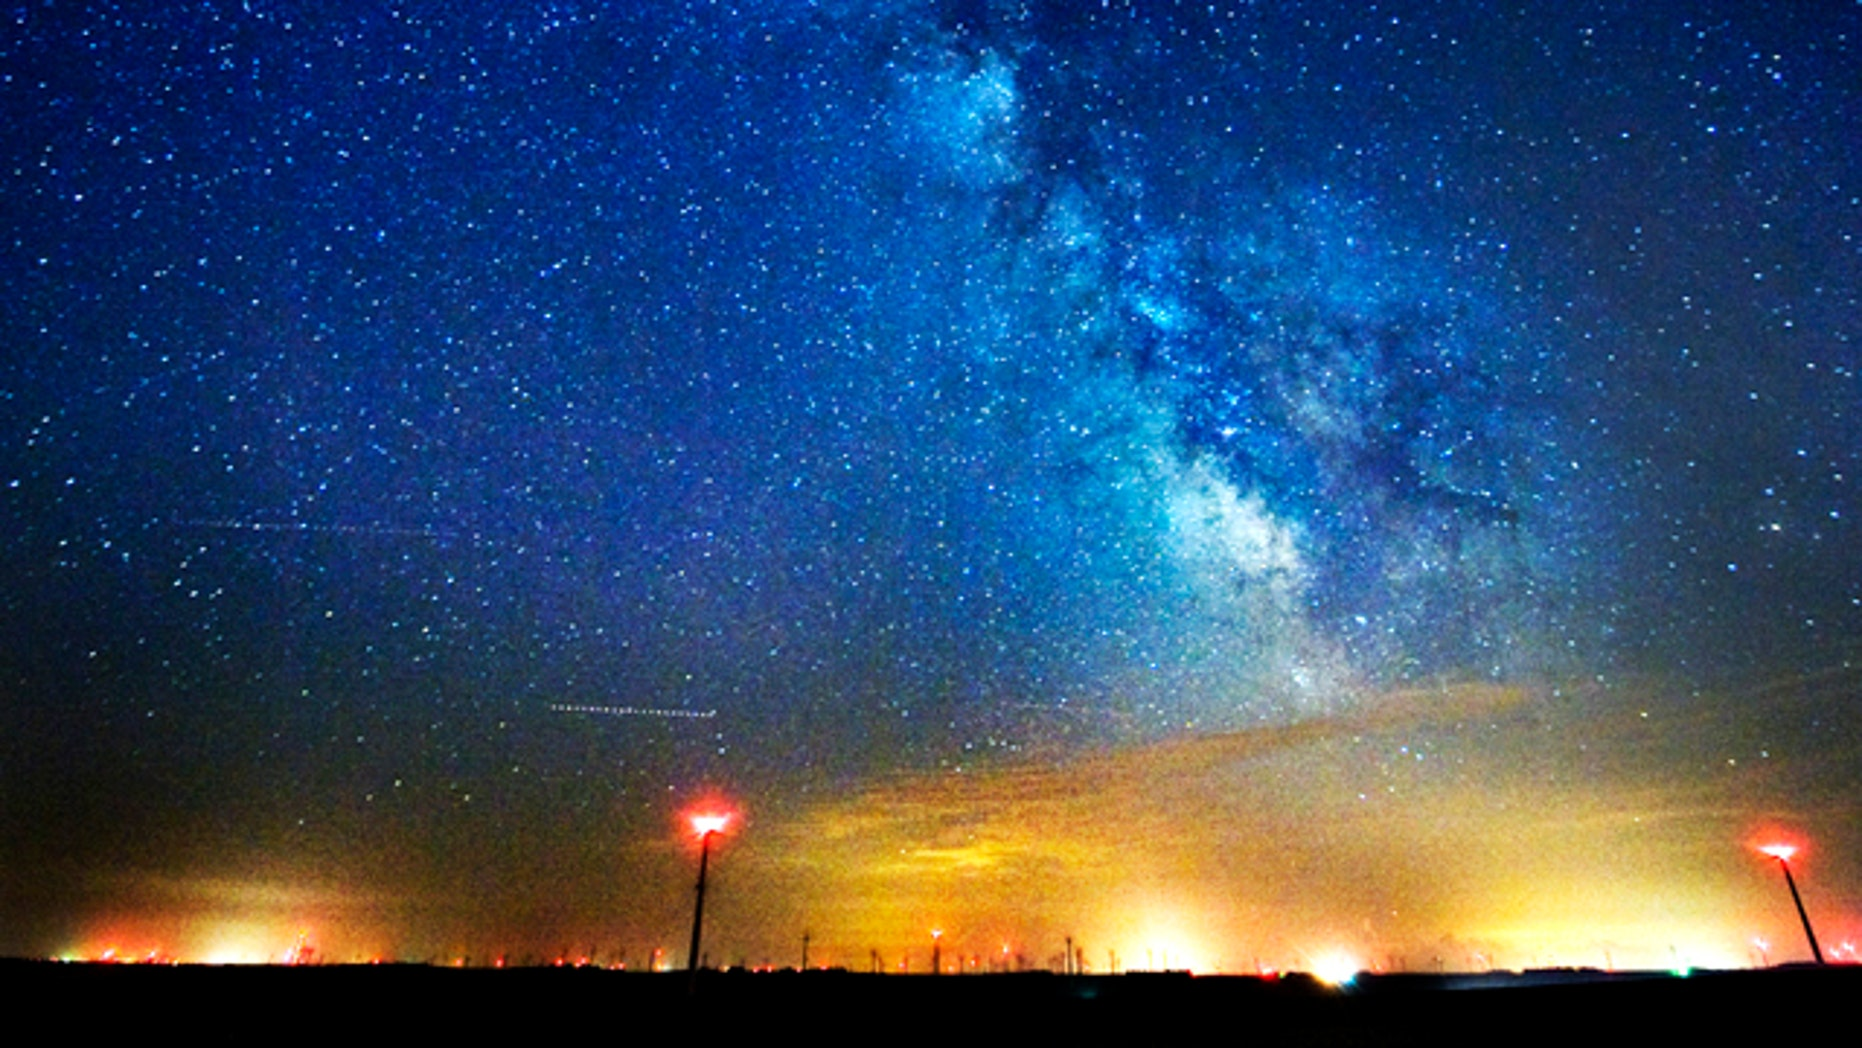 The Milky Way spins in the sky above wind turbines near Lake Benton and Hendricks, Minn. Scientists have estimated the first cosmic census of planets in our galaxy and the numbers are astronomical: at least 50 billion planets in the Milky Way. At least 500 million of those planets are in the not-too-hot, not-too-cold zone where life could exist, scientists announced Saturday, Feb. 19, 2011.